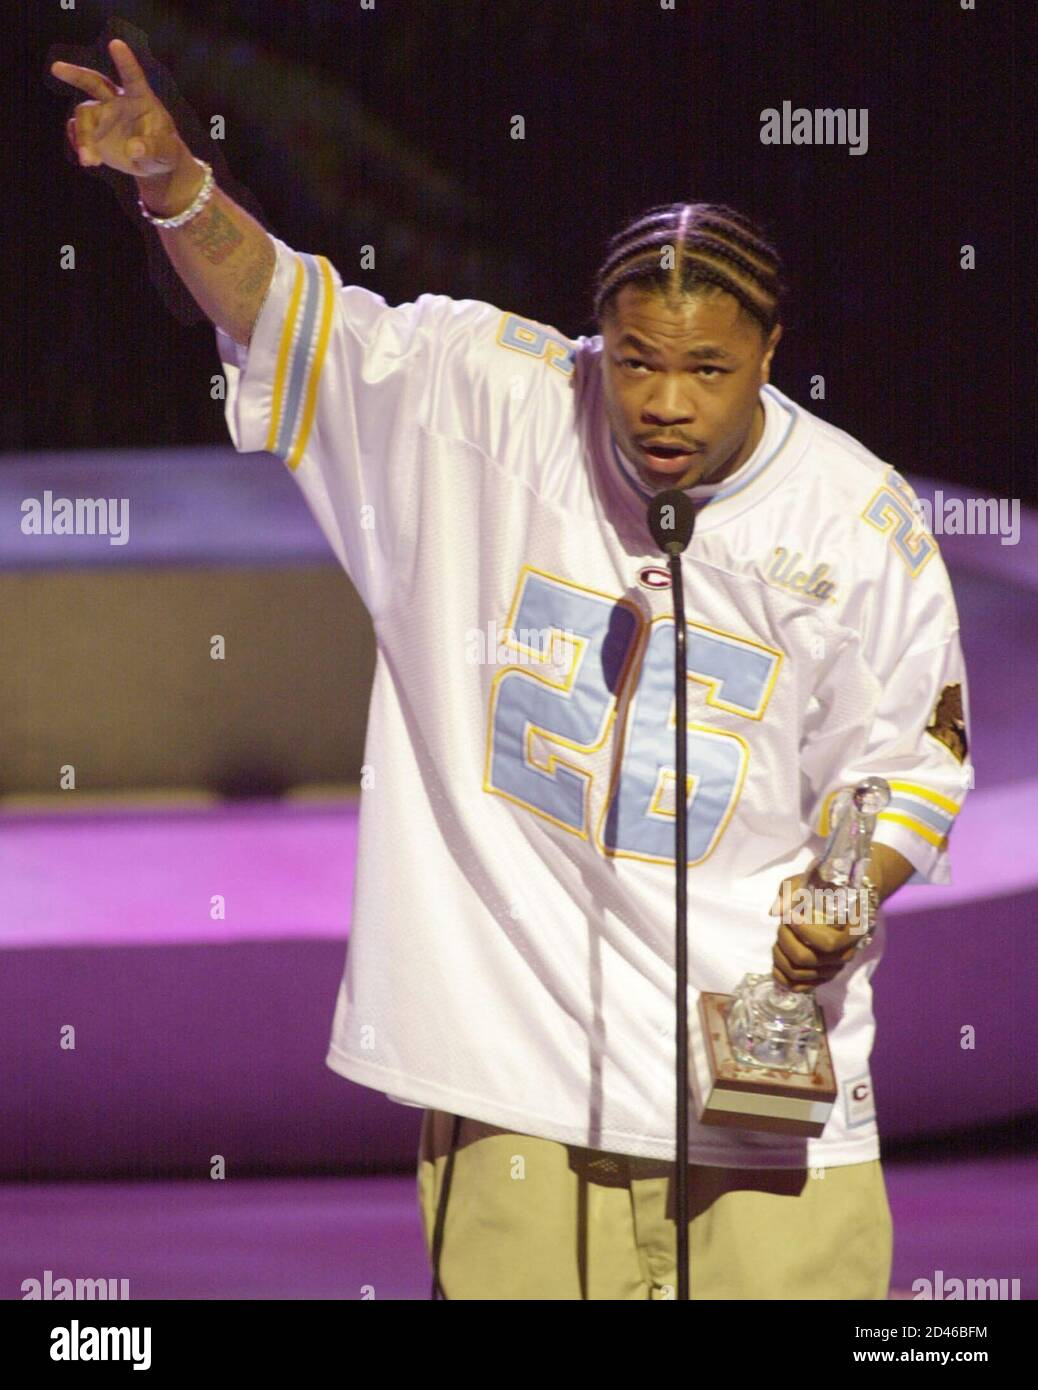 Xzibit Accepts Skateboarding S Music Artist Of The Year Award On Behalf Of Eminem During The Espn Action Sports Music Awards At The Universal Amphitheatre April 7 2001 In Los Angeles The